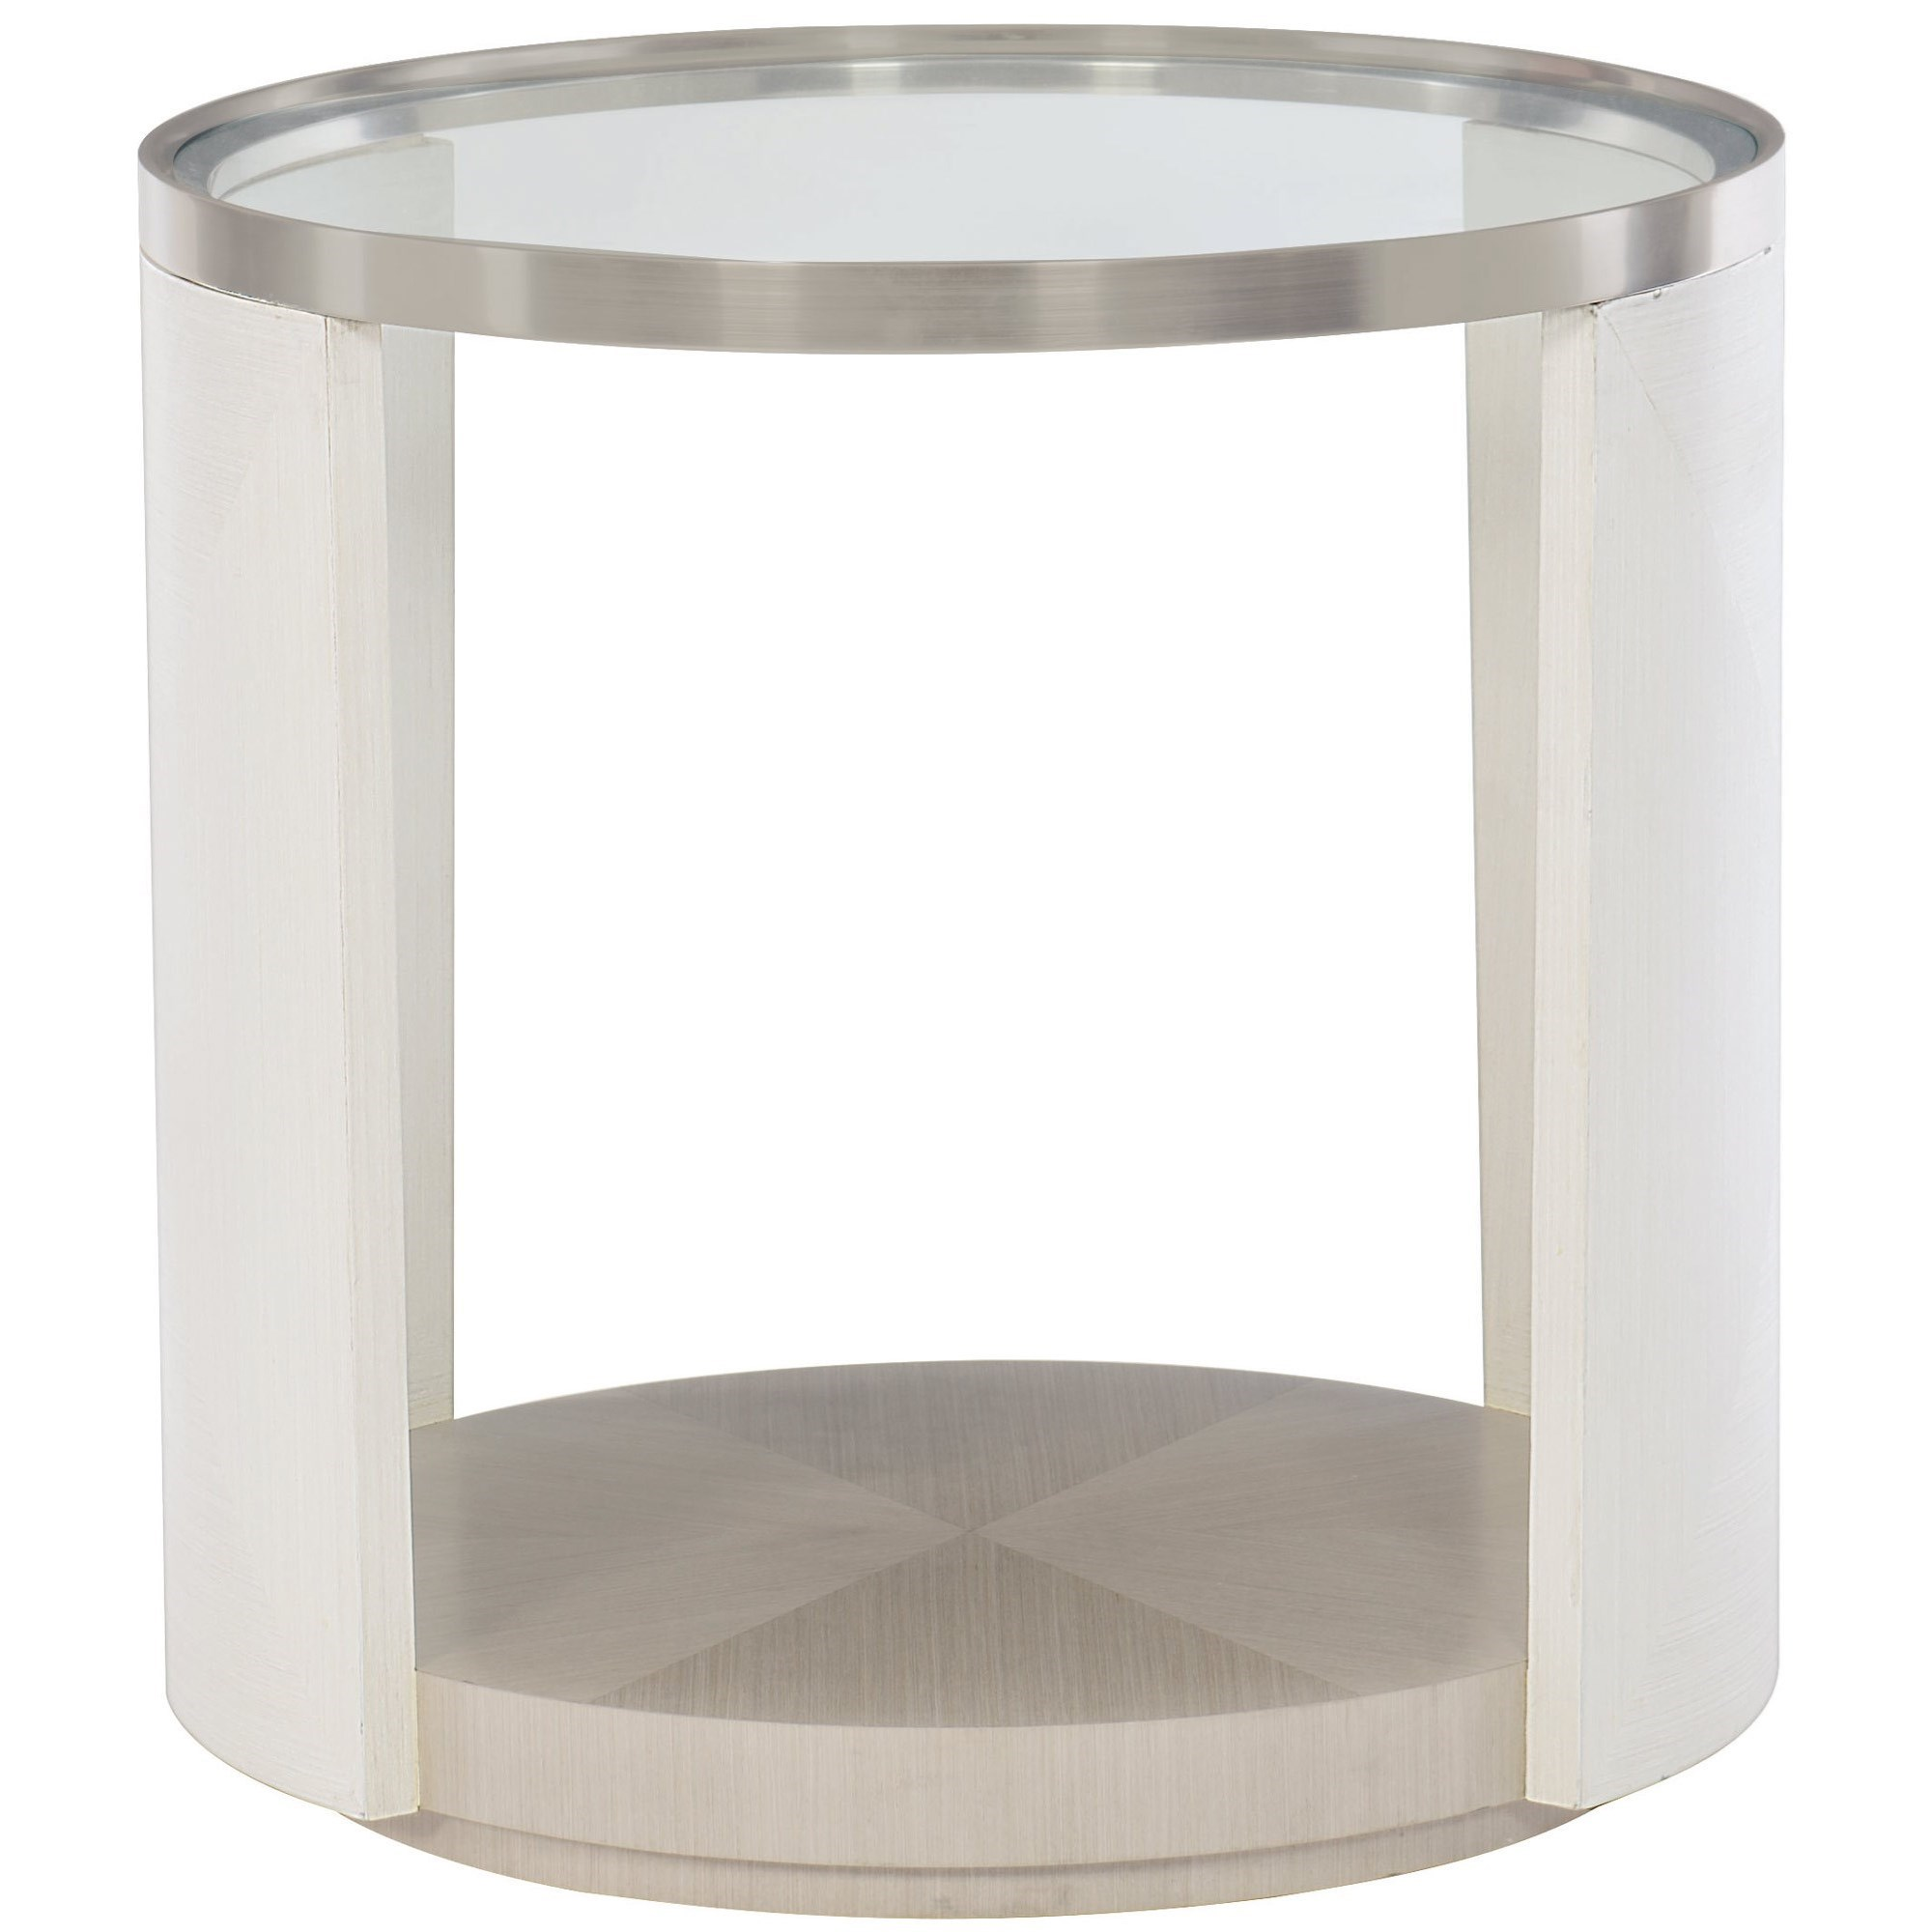 Bernhardt Axiom 381 125 Contemporary Round Chairside Table